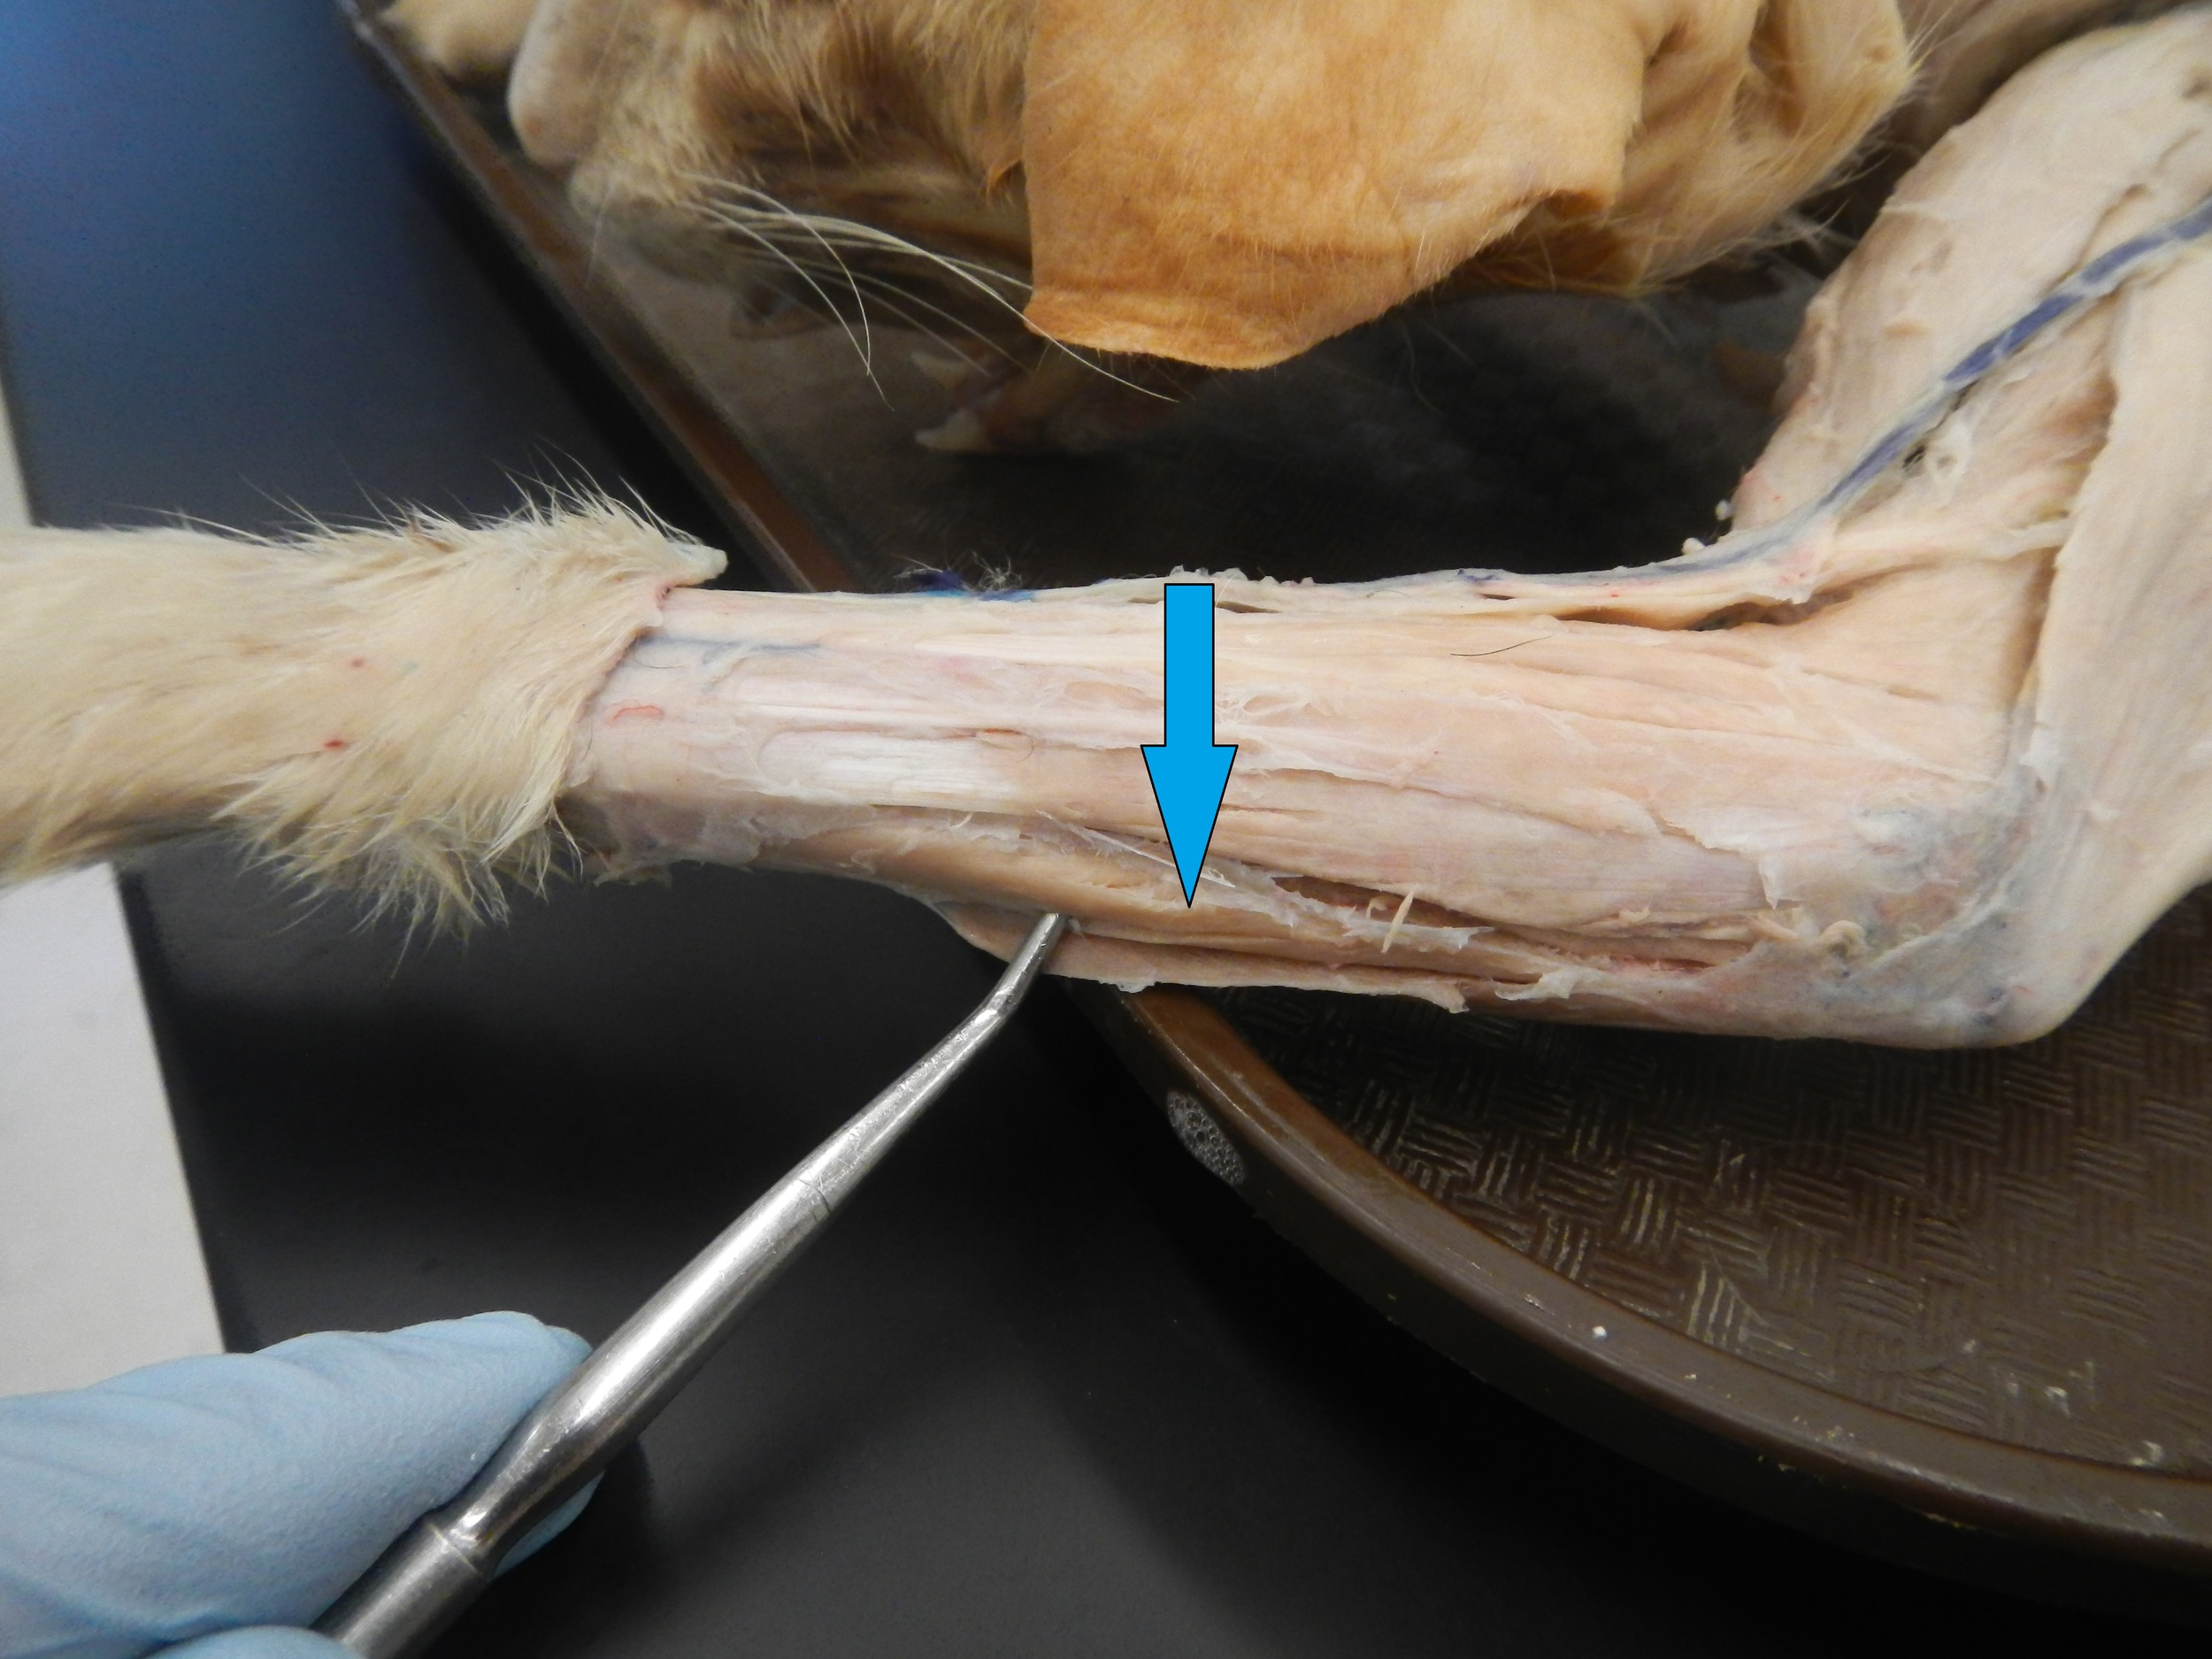 Extensor Carpi Ulnaris   O - Lateral epicondyle of humerus  I - Base of 5th metacarpal  F - Wrist extension and adduction